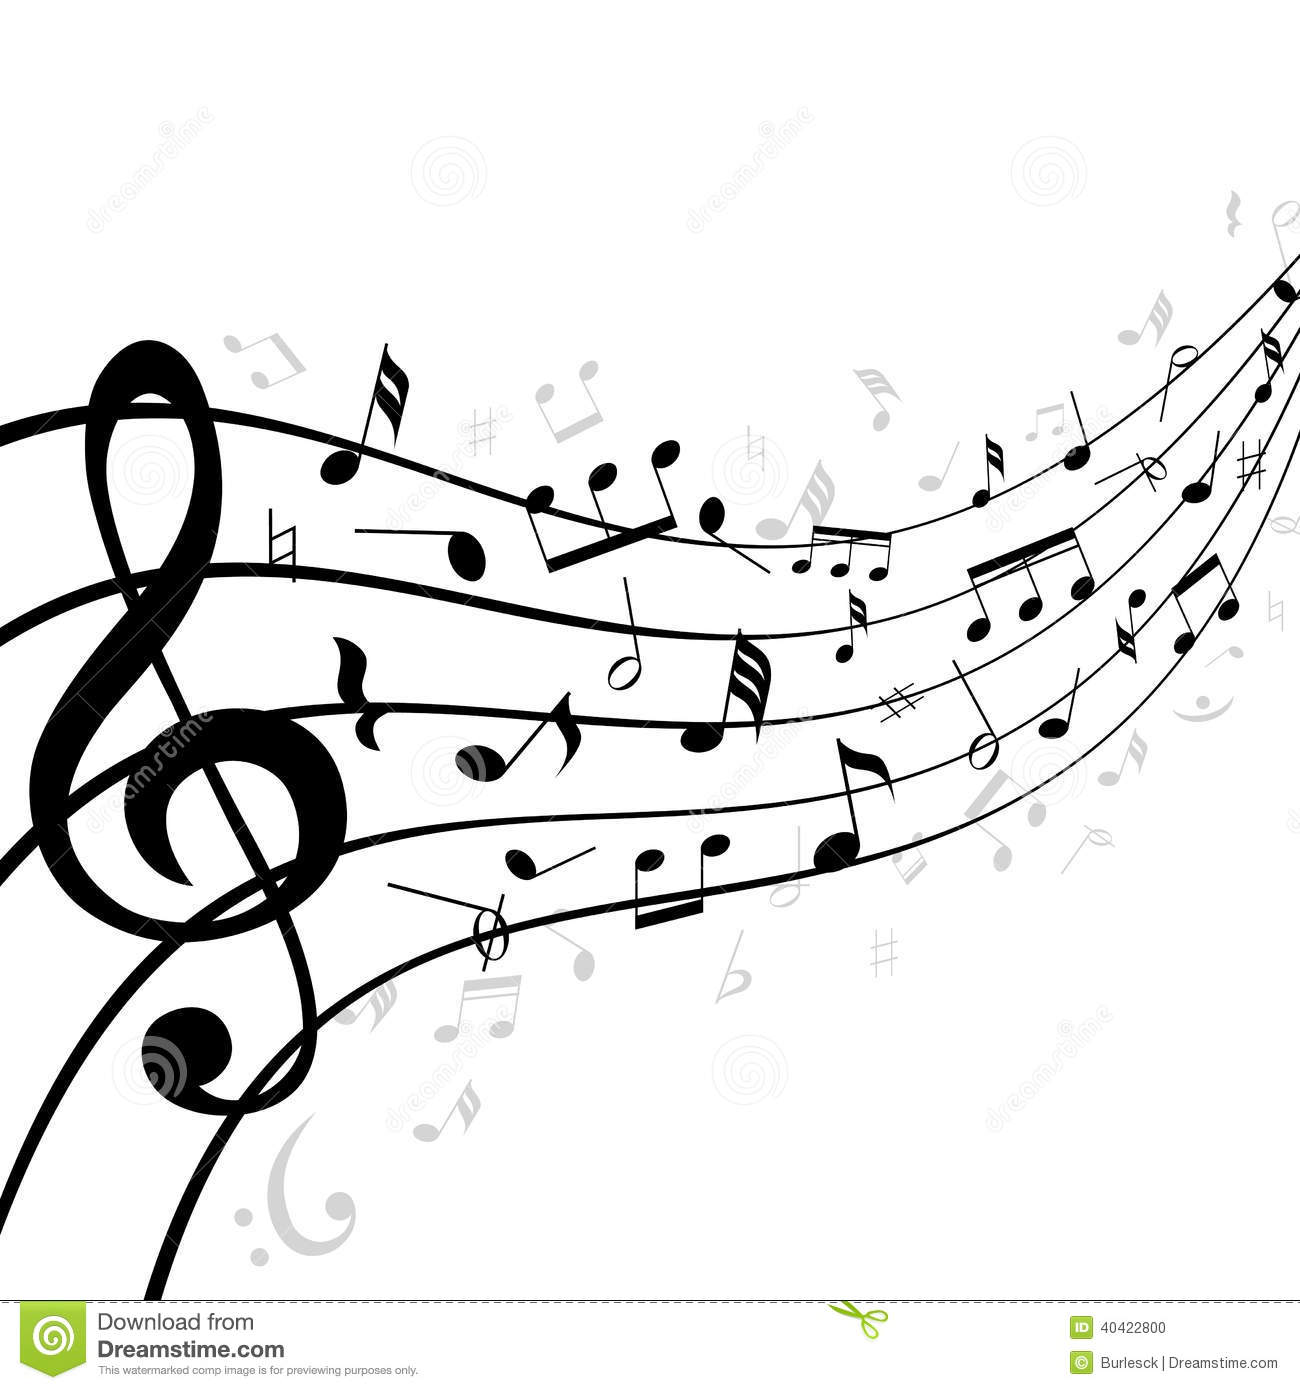 Line Drawing Music : Music notes on a stave or staff vector illustration